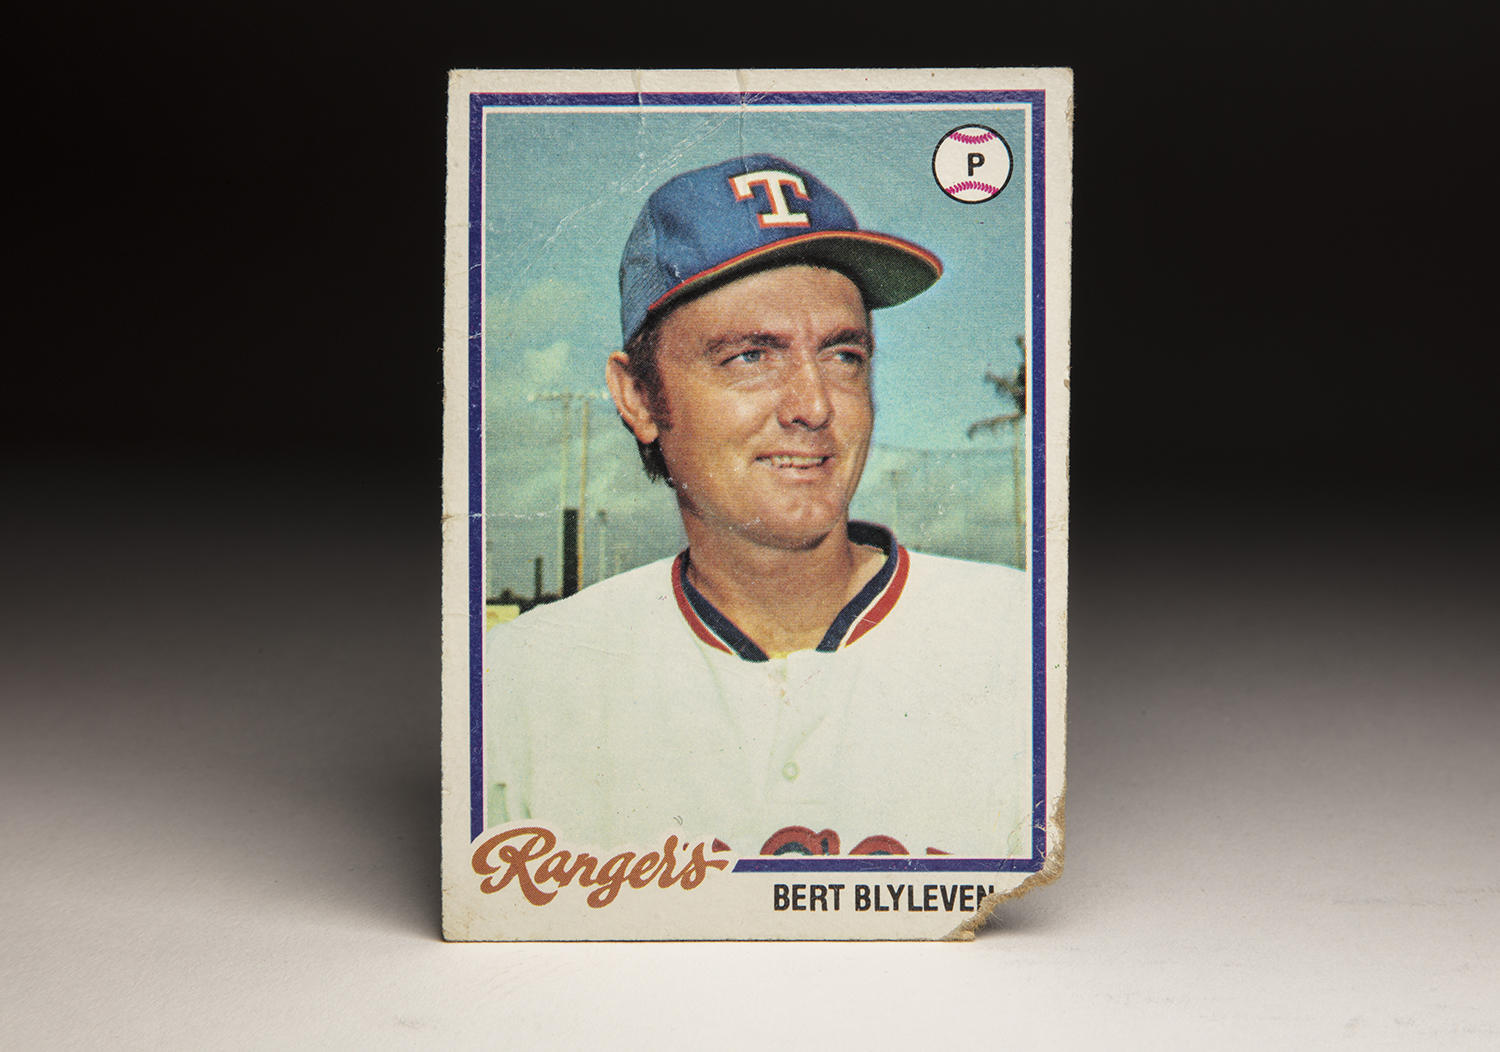 Bert Blyleven's 1978 Topps card featured him in a Rangers uniform – even though by then he had been traded to the Pittsburgh Pirates. (Milo Stewart Jr. / National Baseball Hall of Fame and Museum)